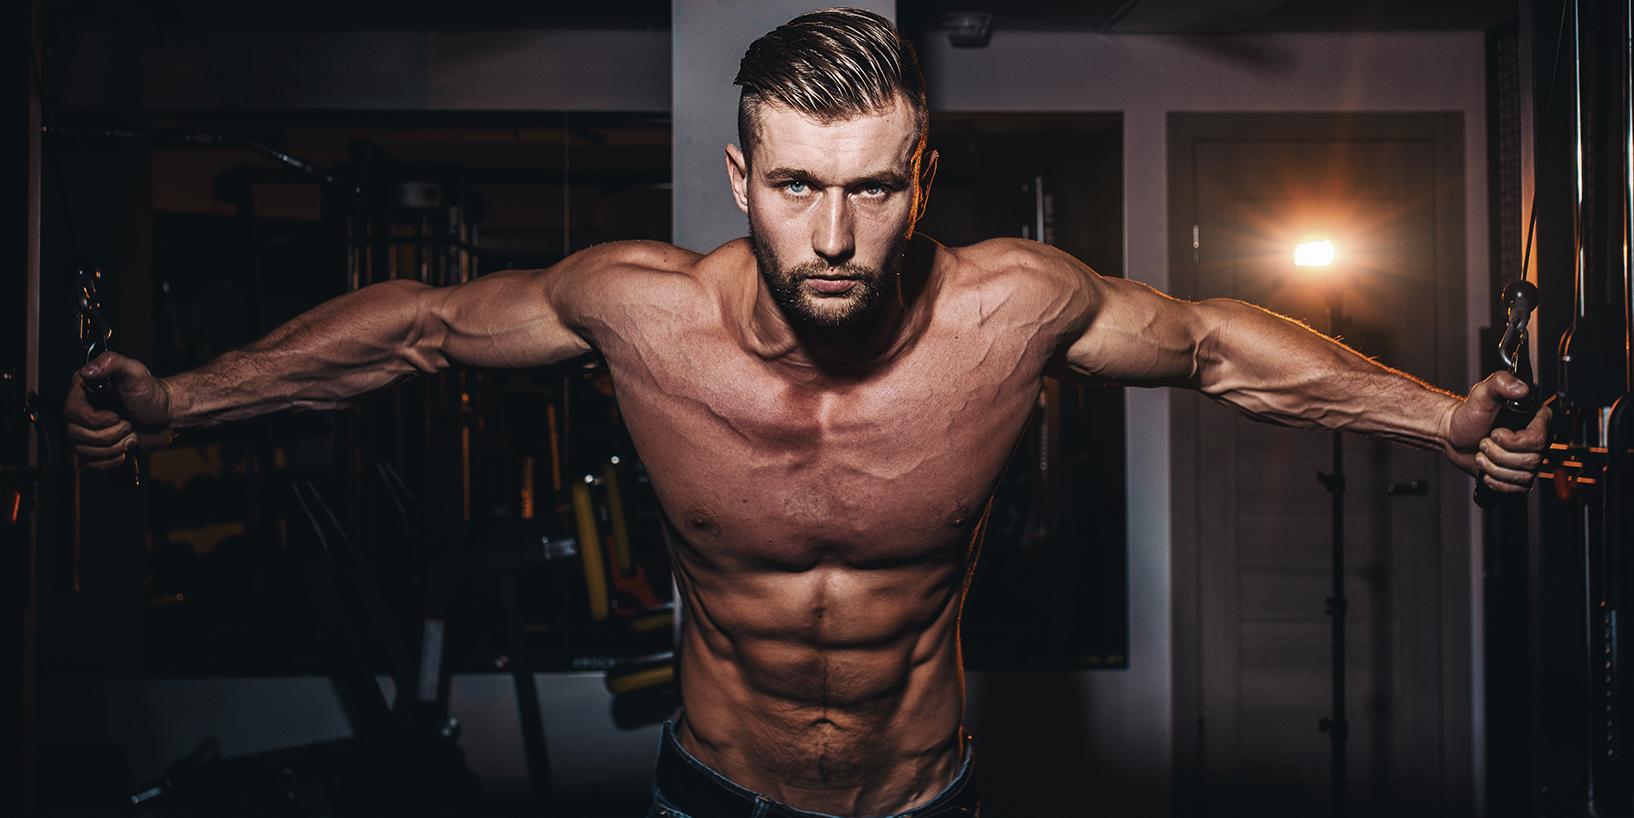 shredded man with very low body fat percentage showing off muscles